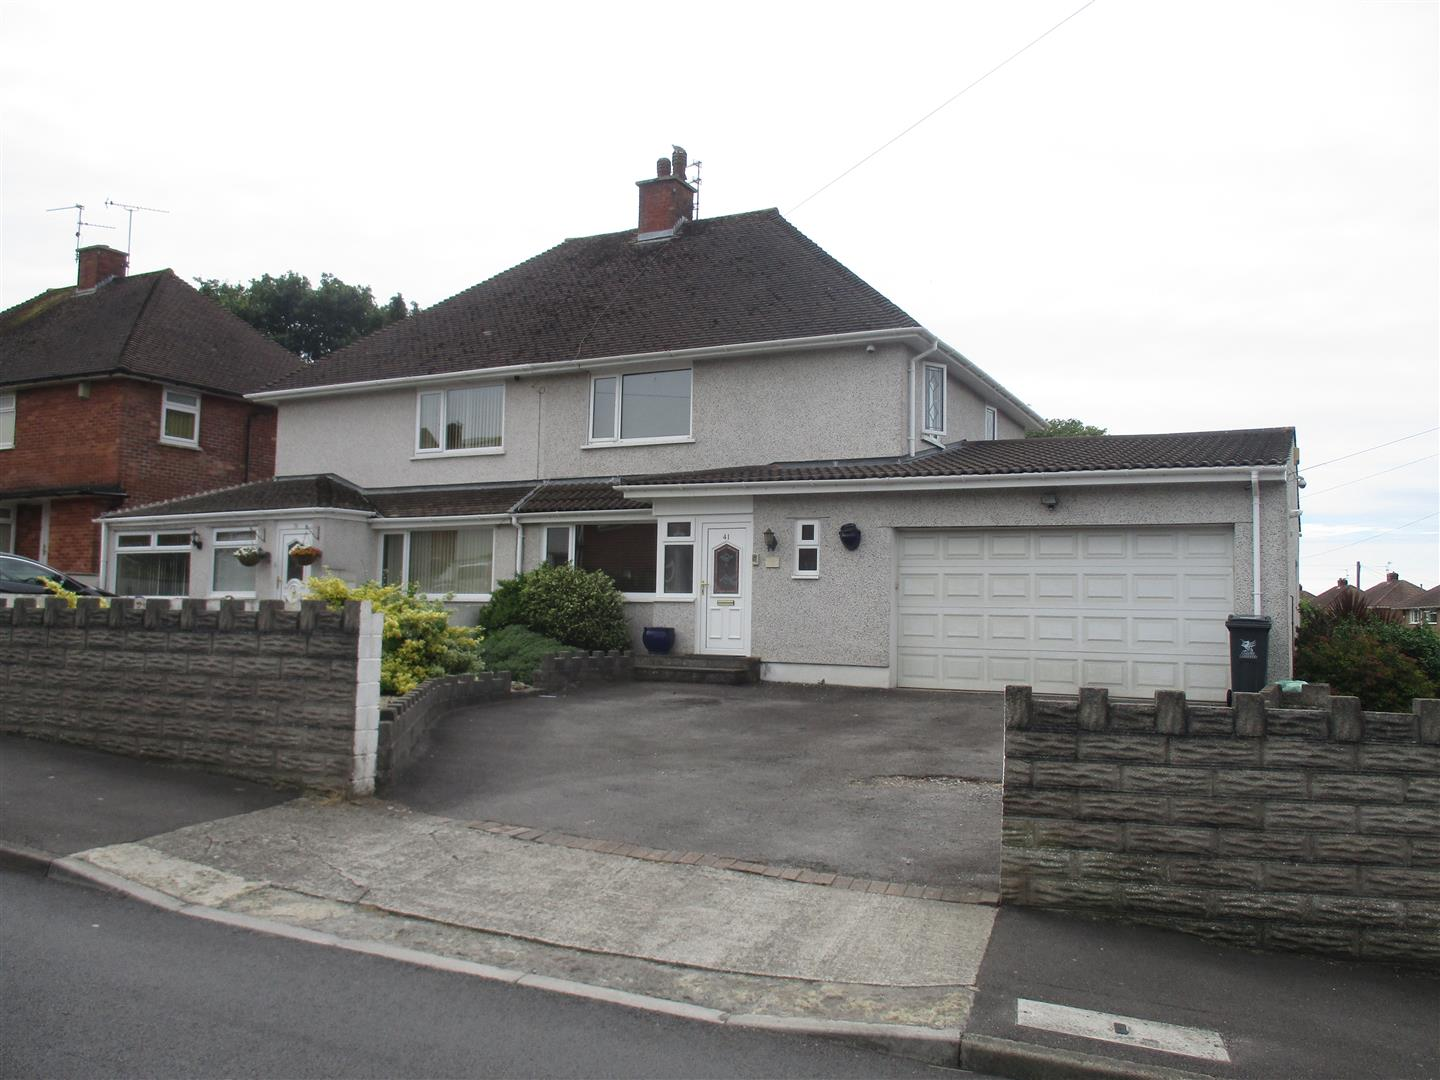 3 Bedrooms Property for sale in Worle Avenue, LLanrumney, Cardiff